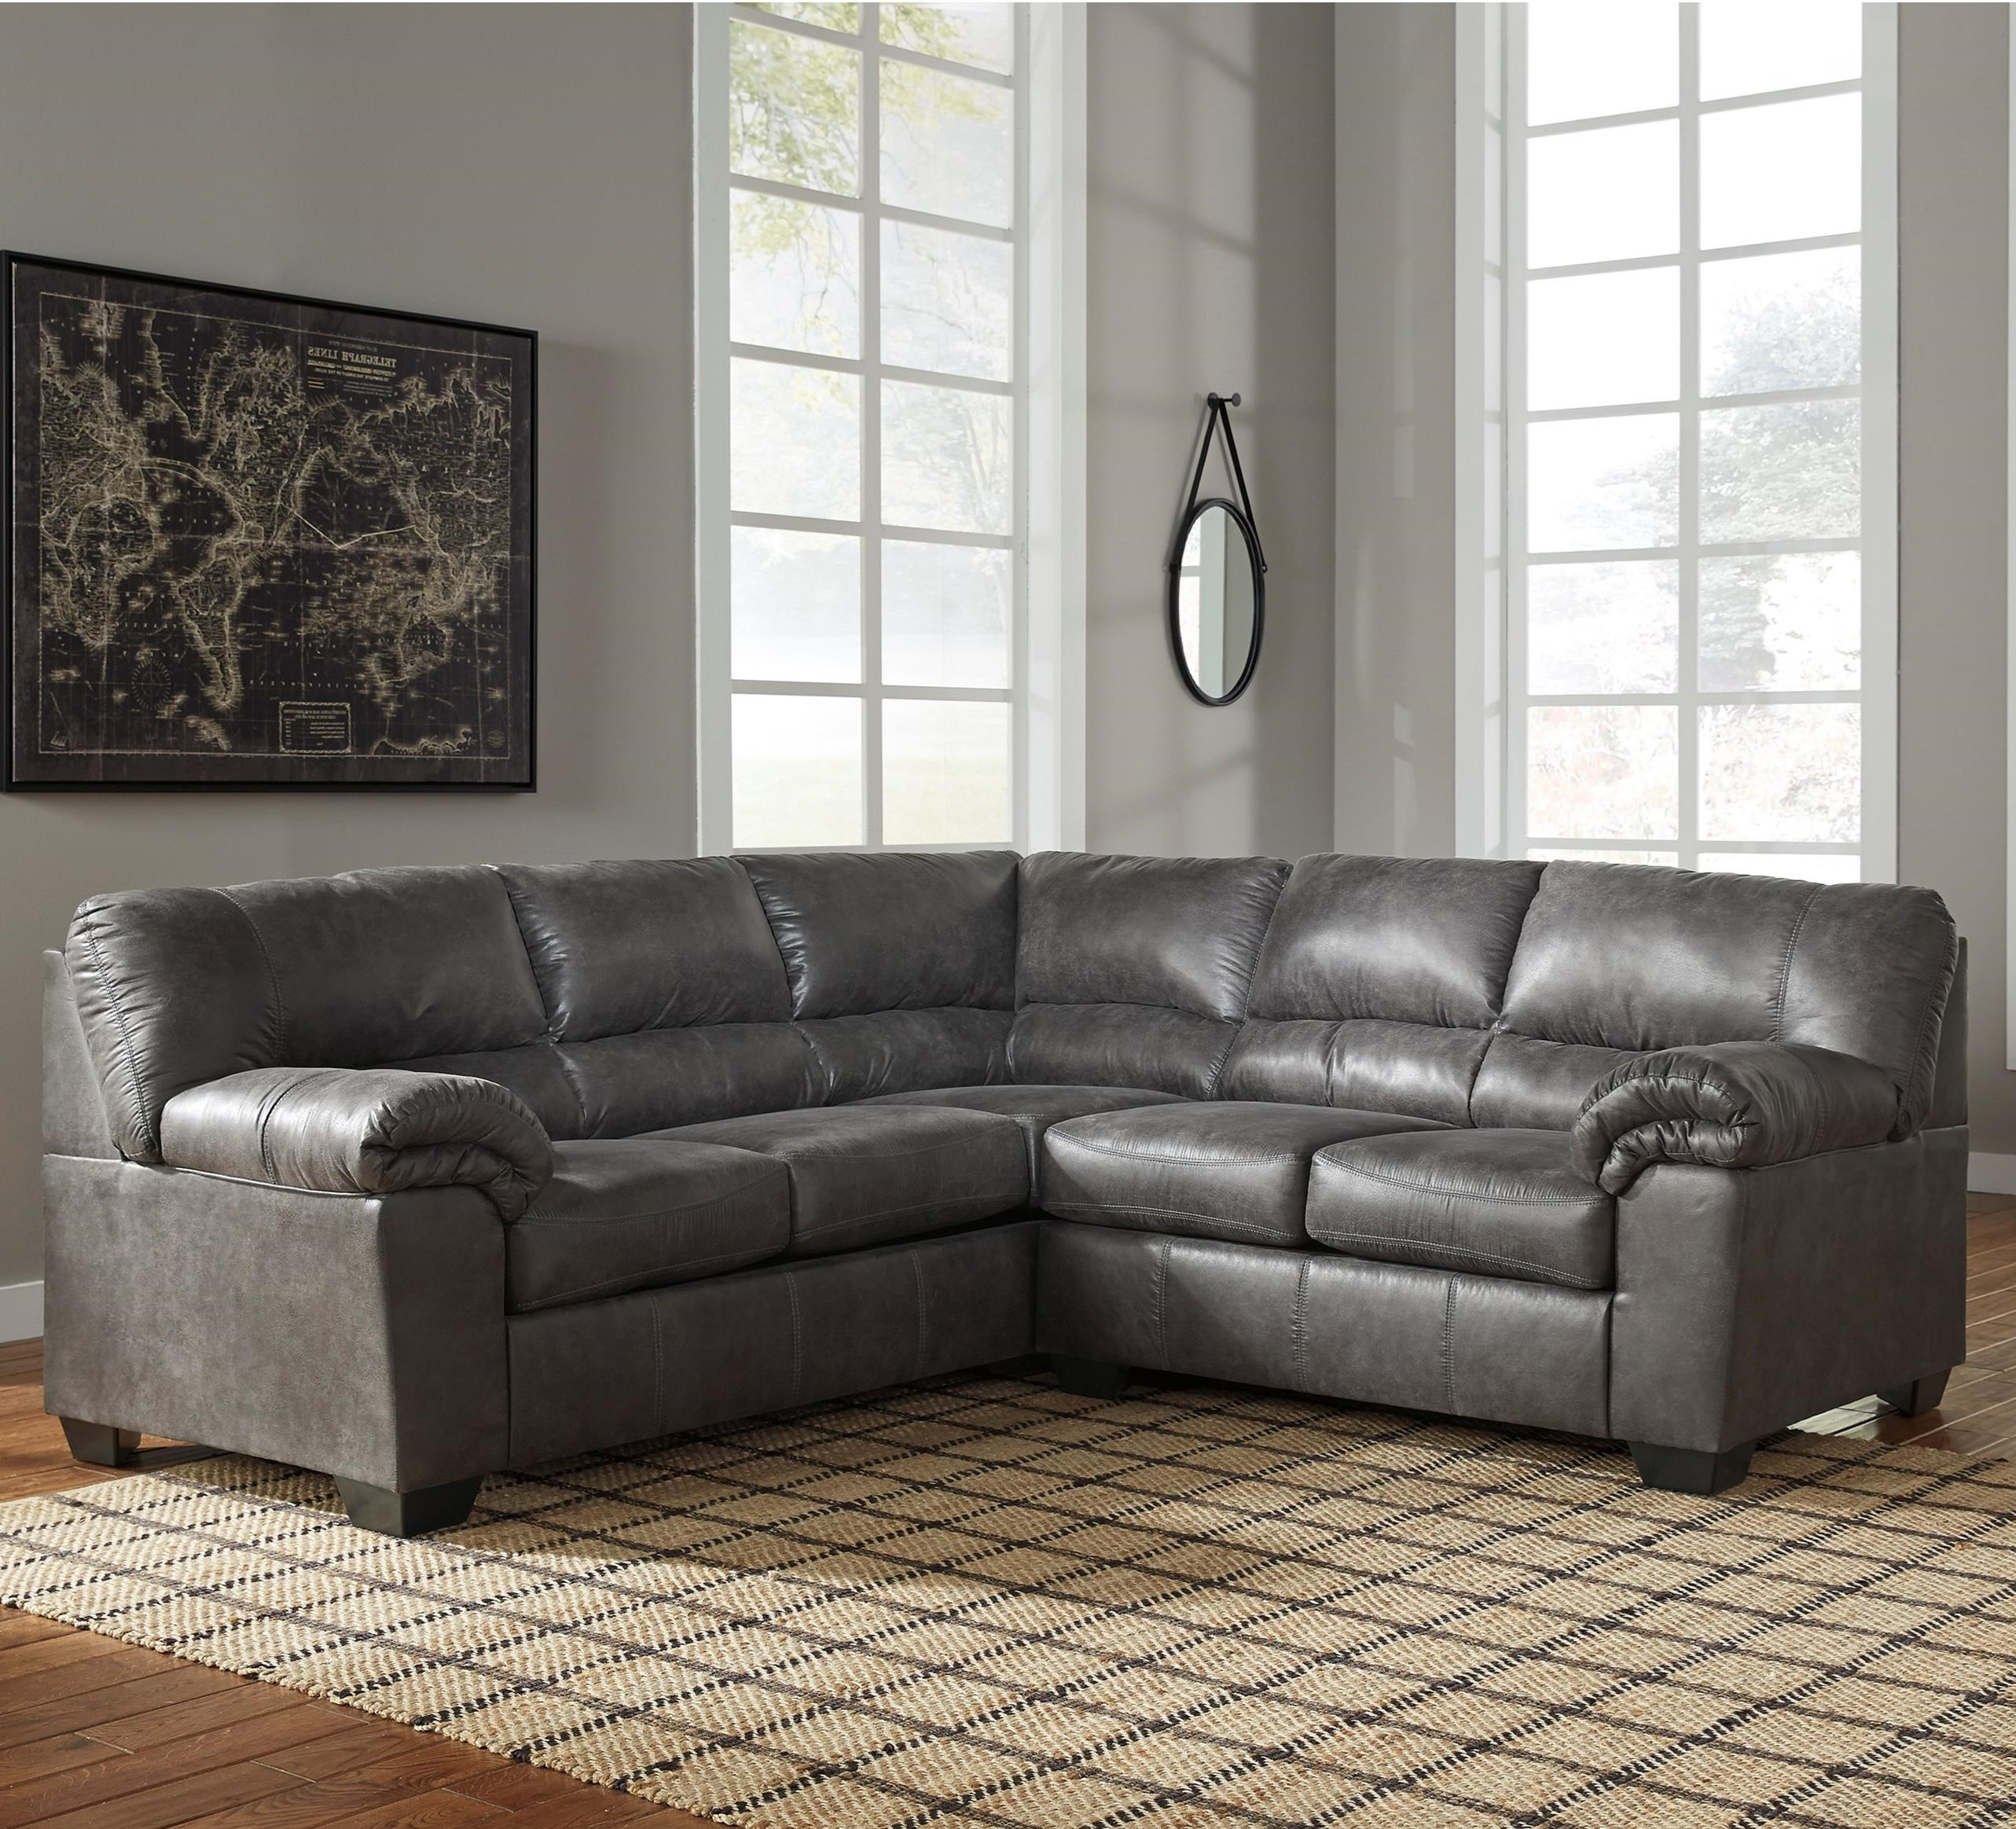 Bladen Two-Piece Sectional by Signature Design by Ashley at Zak's Warehouse Clearance Center